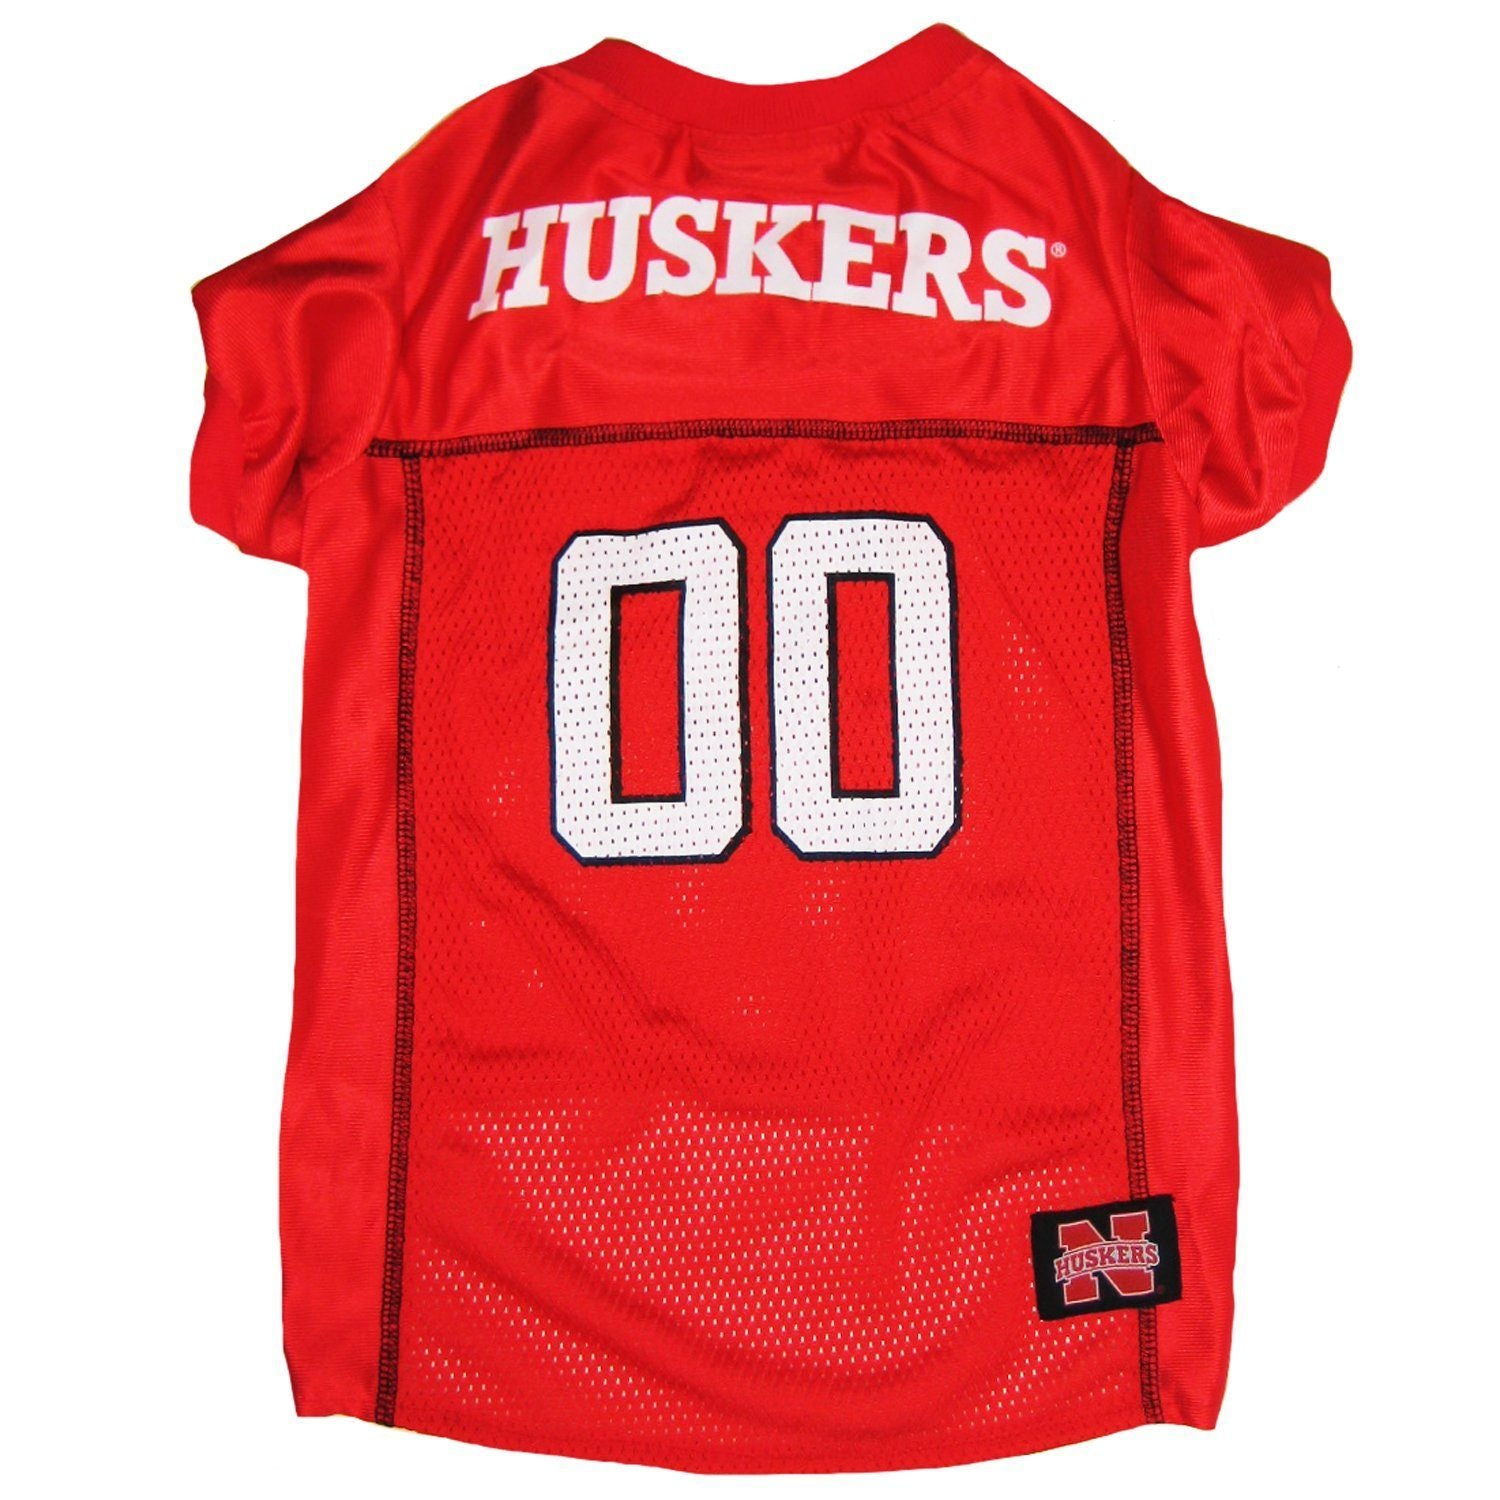 Nebraska Huskers Football Puppy Dog Jersey - Jersey Champs - Custom Basketball, Baseball, Football & Hockey Jerseys